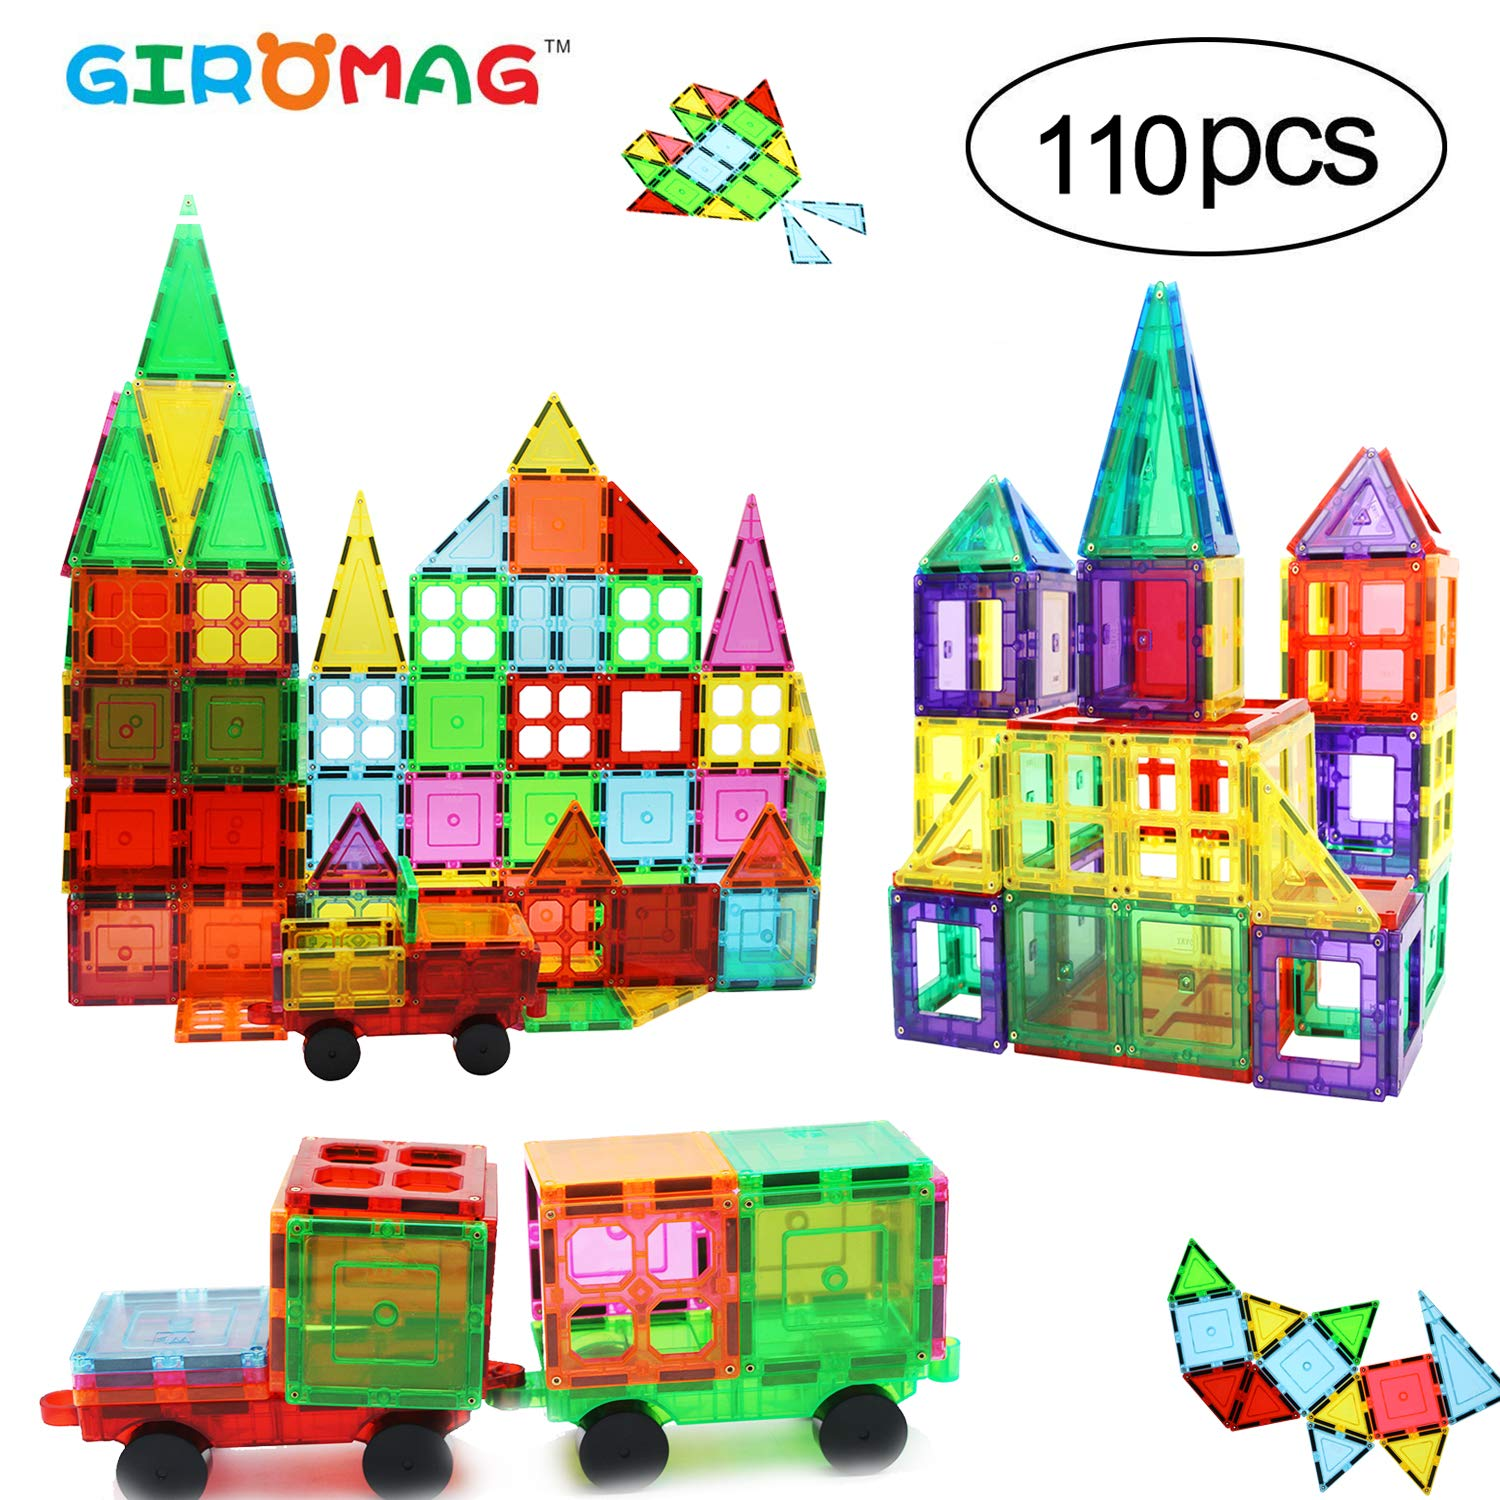 Giromag Magnet Stick and Stack 110pcs - Educational 3D Magnet Blocks Building for Toddlers Kids, Magnet Set Magnetics Stem Toys - Enhance Creativity by Giromag